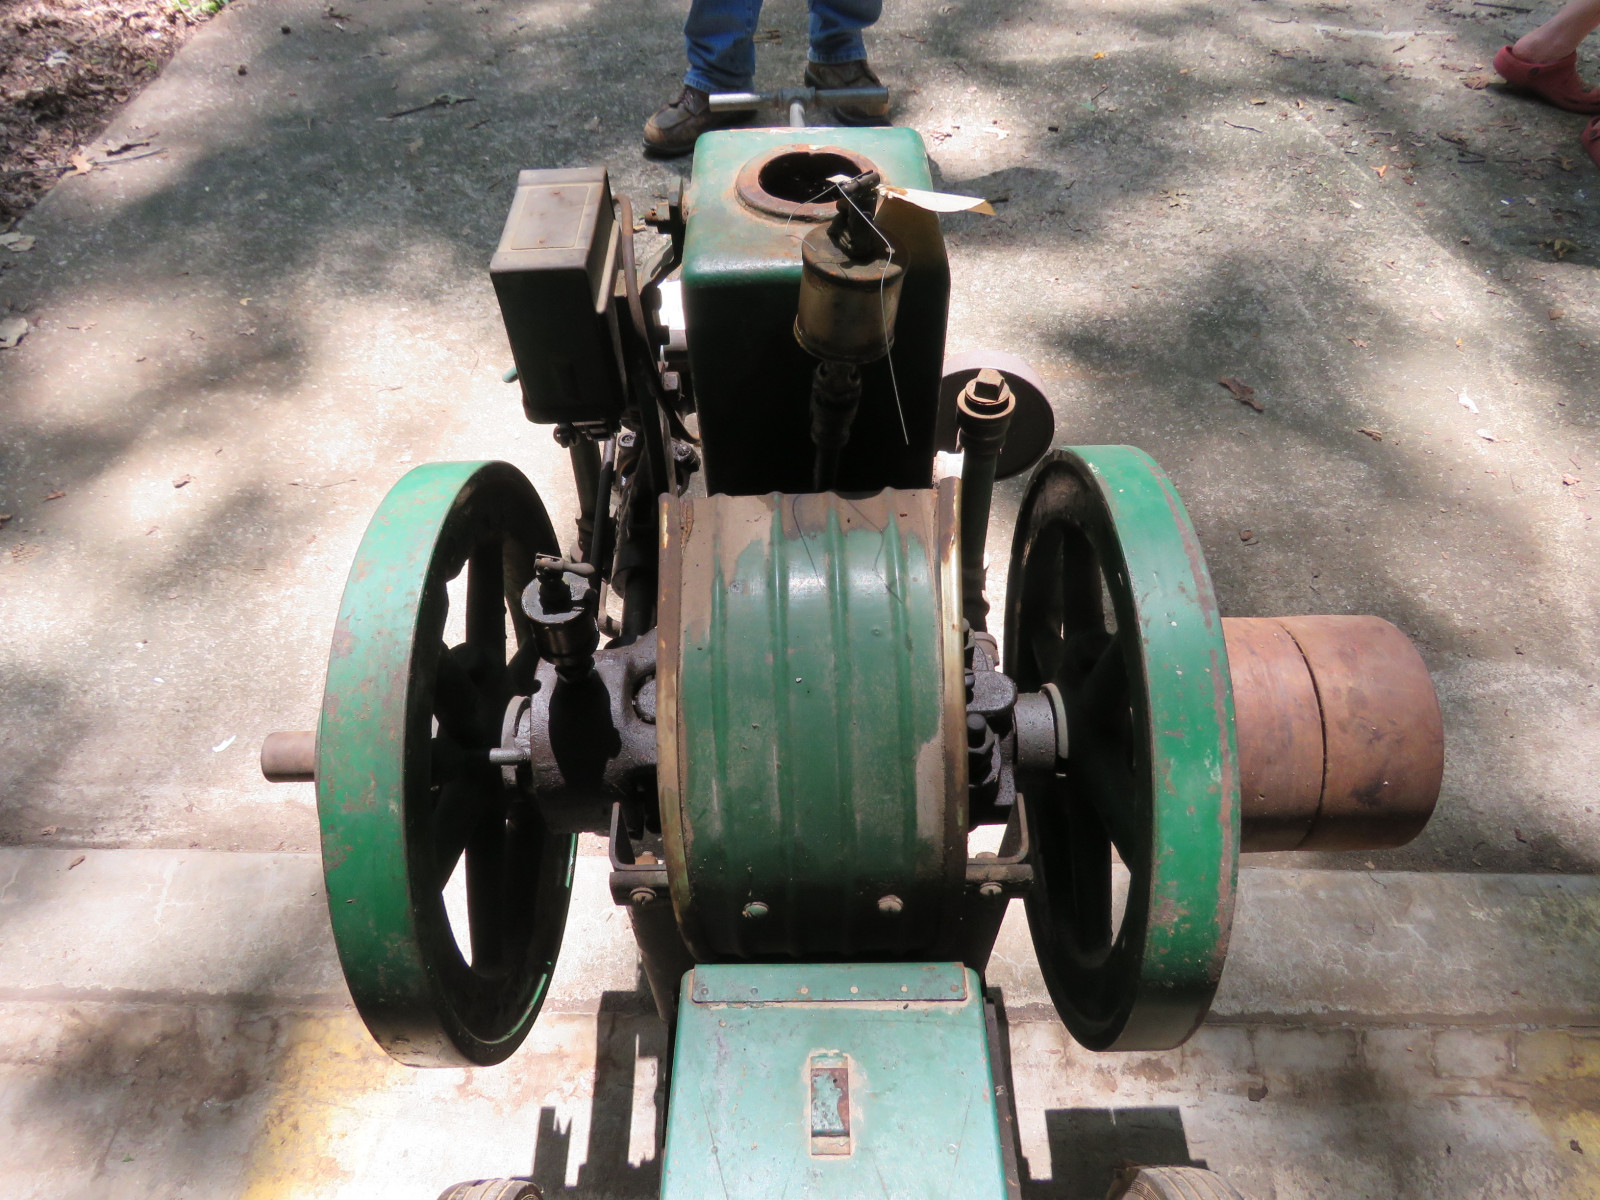 Domestic Side Shaft 1 1/2HP Stationary Gas Engine on Cart - Image 7